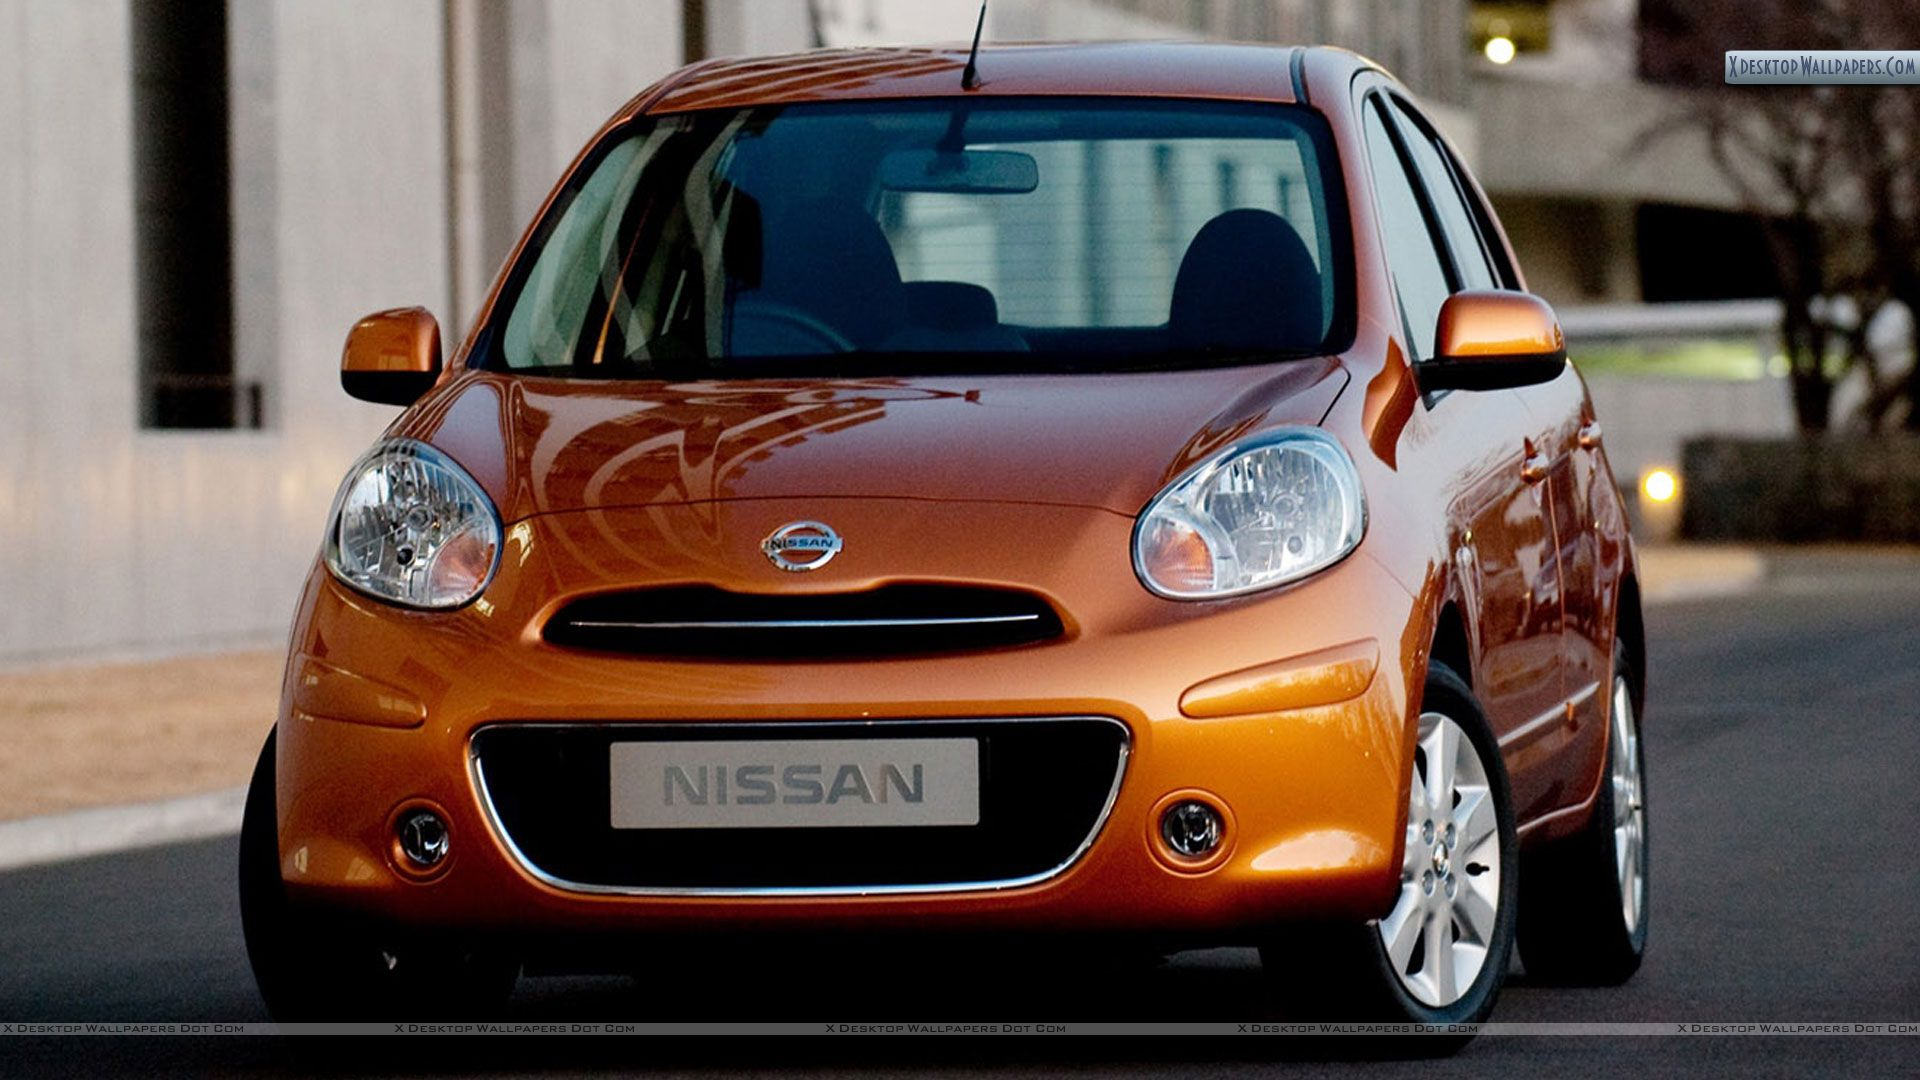 nissan micra tekna 2011 orange front pose wallpaper. Black Bedroom Furniture Sets. Home Design Ideas